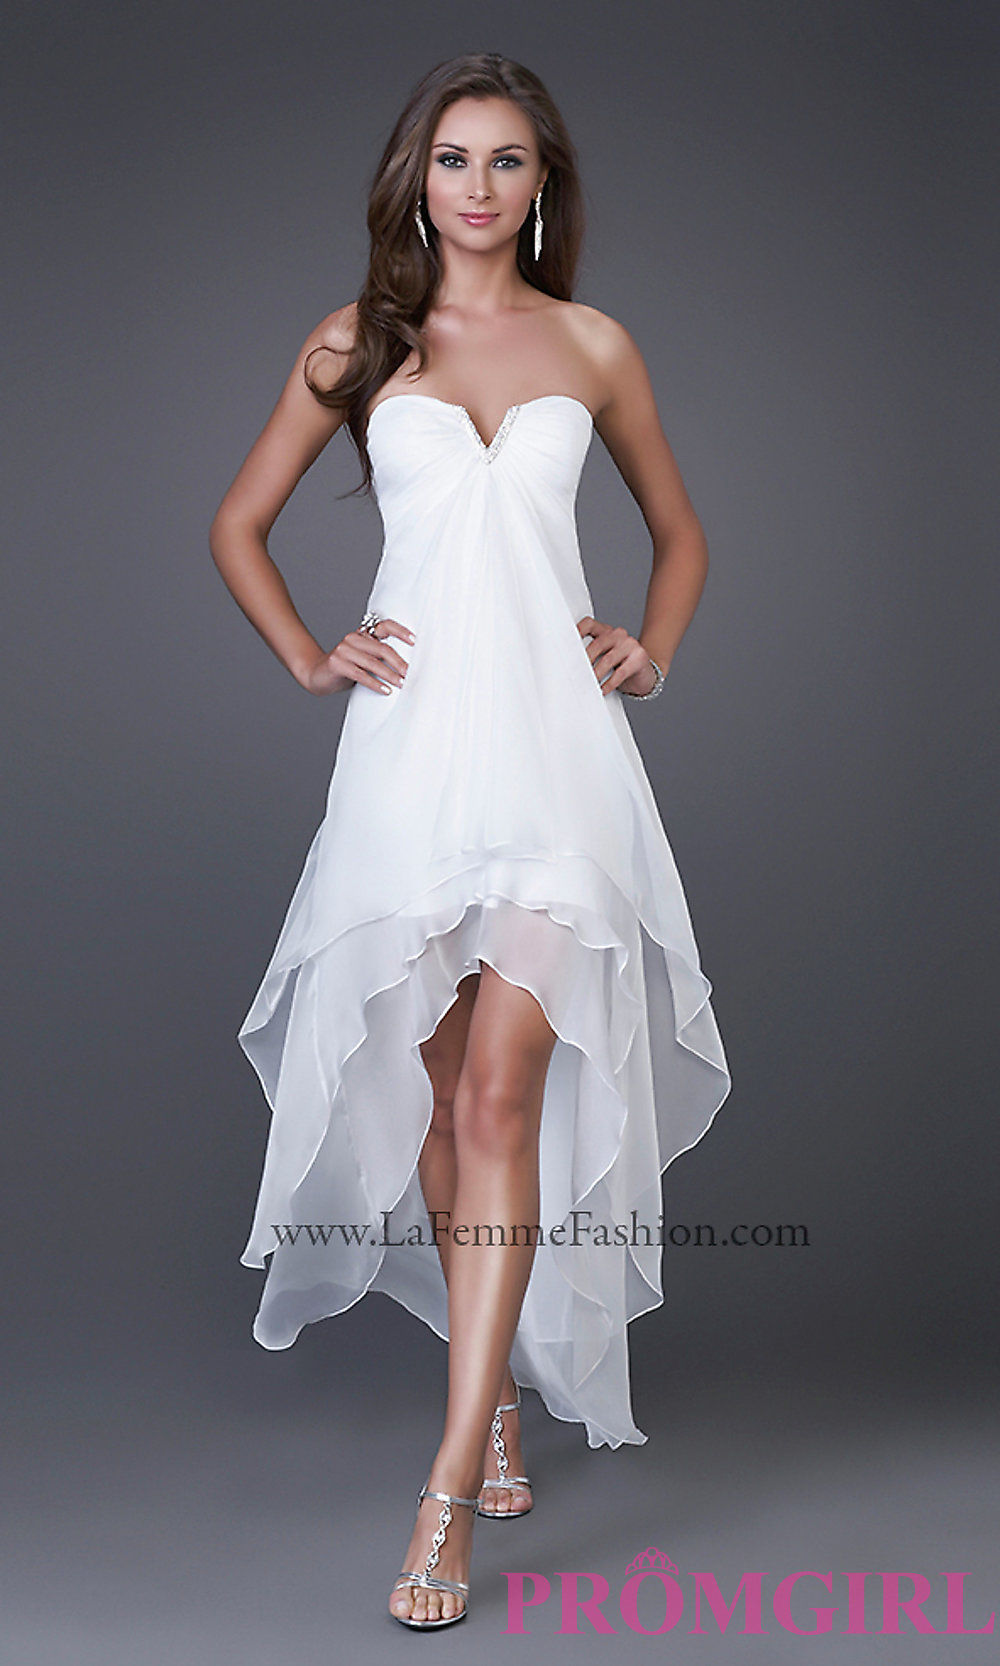 Robe cocktail mariage pas cher fashion designs for Boutique de robe de mariage oxfam